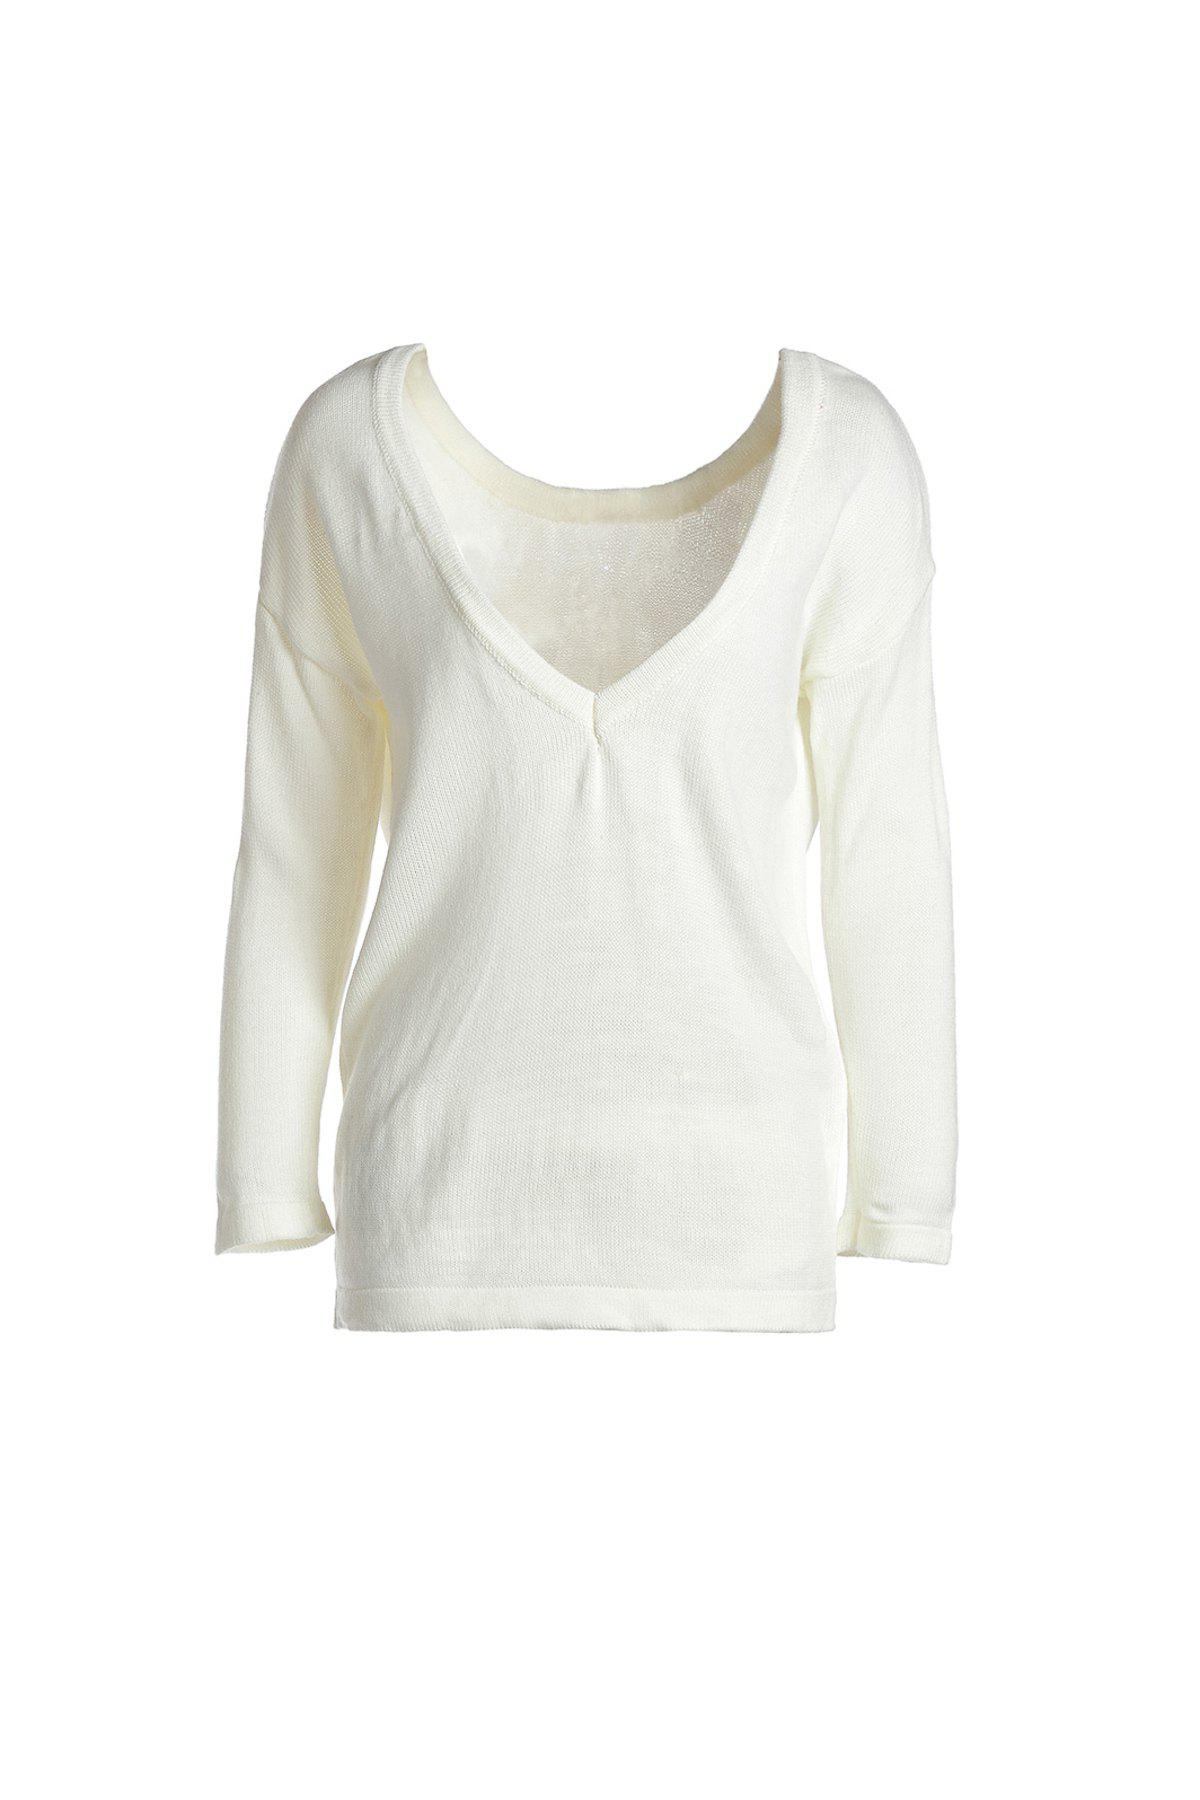 Stylish Long Sleeve Round Neck Loose-Fitting Backless Womens KnitwearWomen<br><br><br>Size: L<br>Color: MILK WHITE